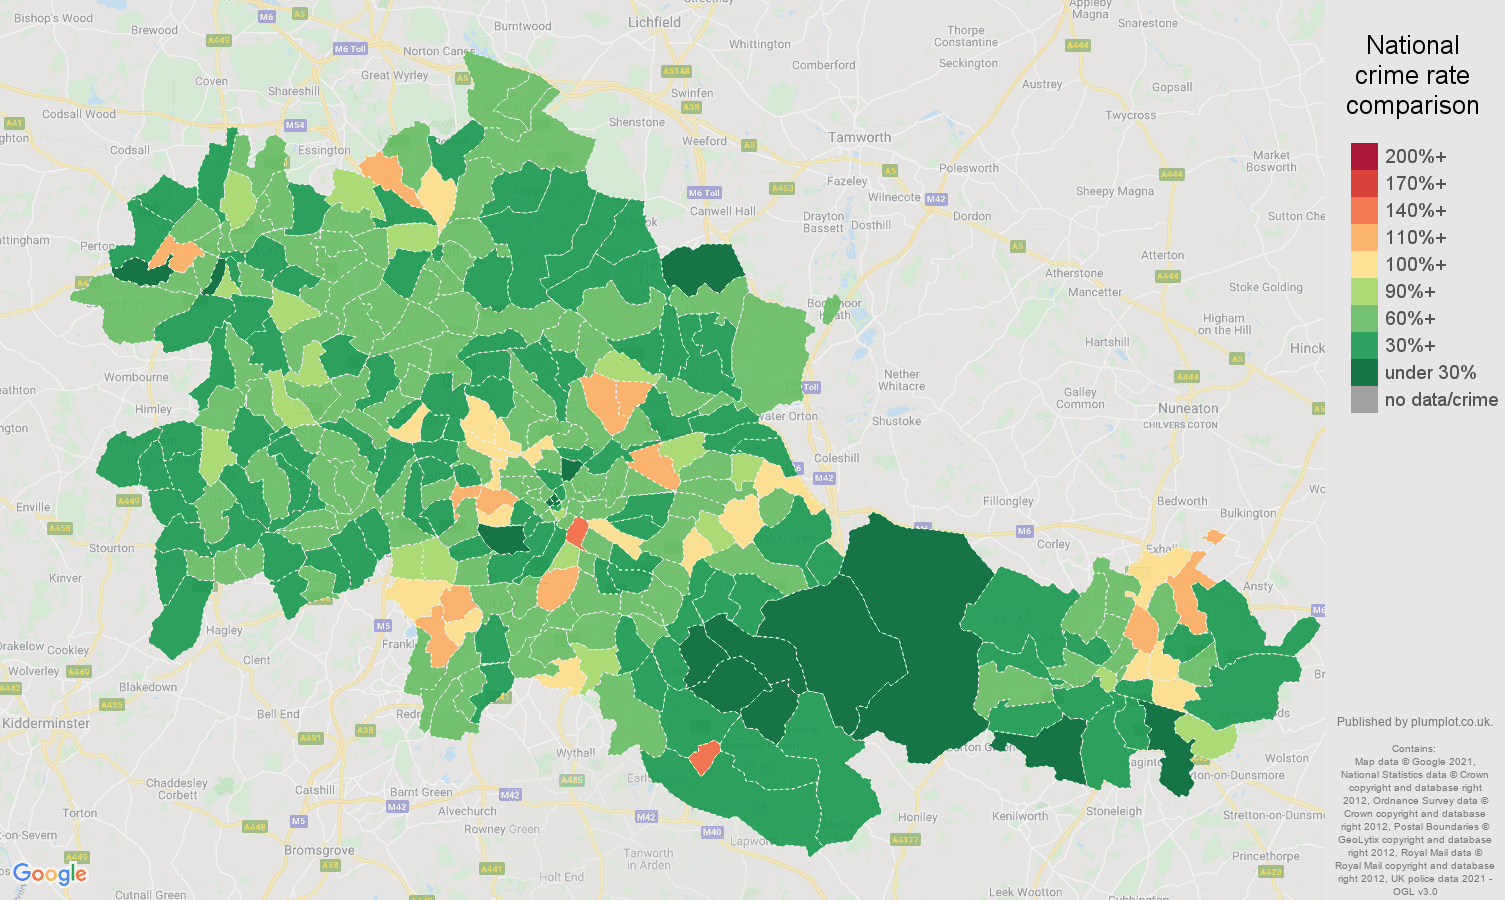 West Midlands county antisocial behaviour crime rate comparison map